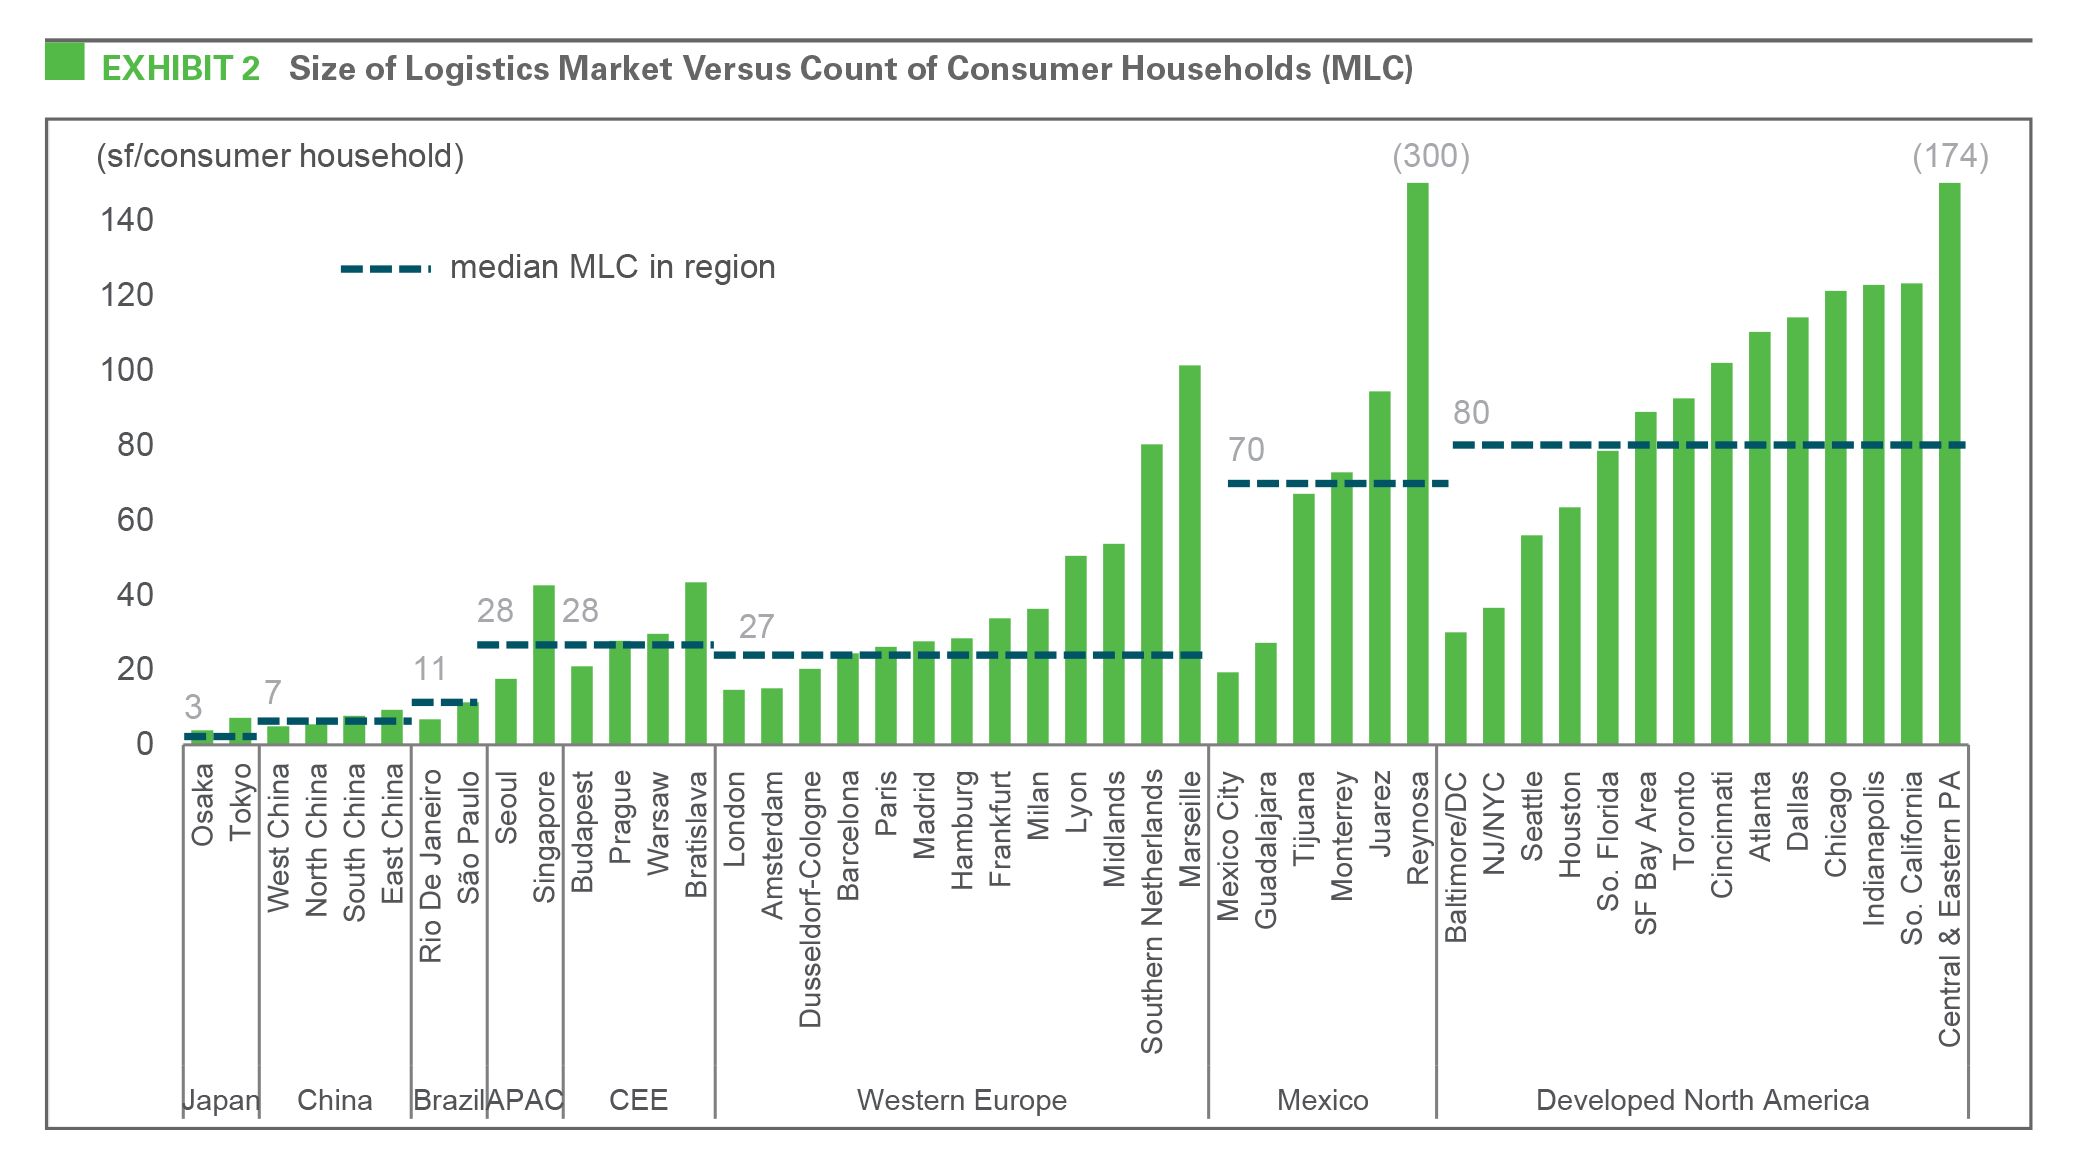 EXHIBIT 2 Size of Logistics Market Versus Count of Consumer Households (MLC)